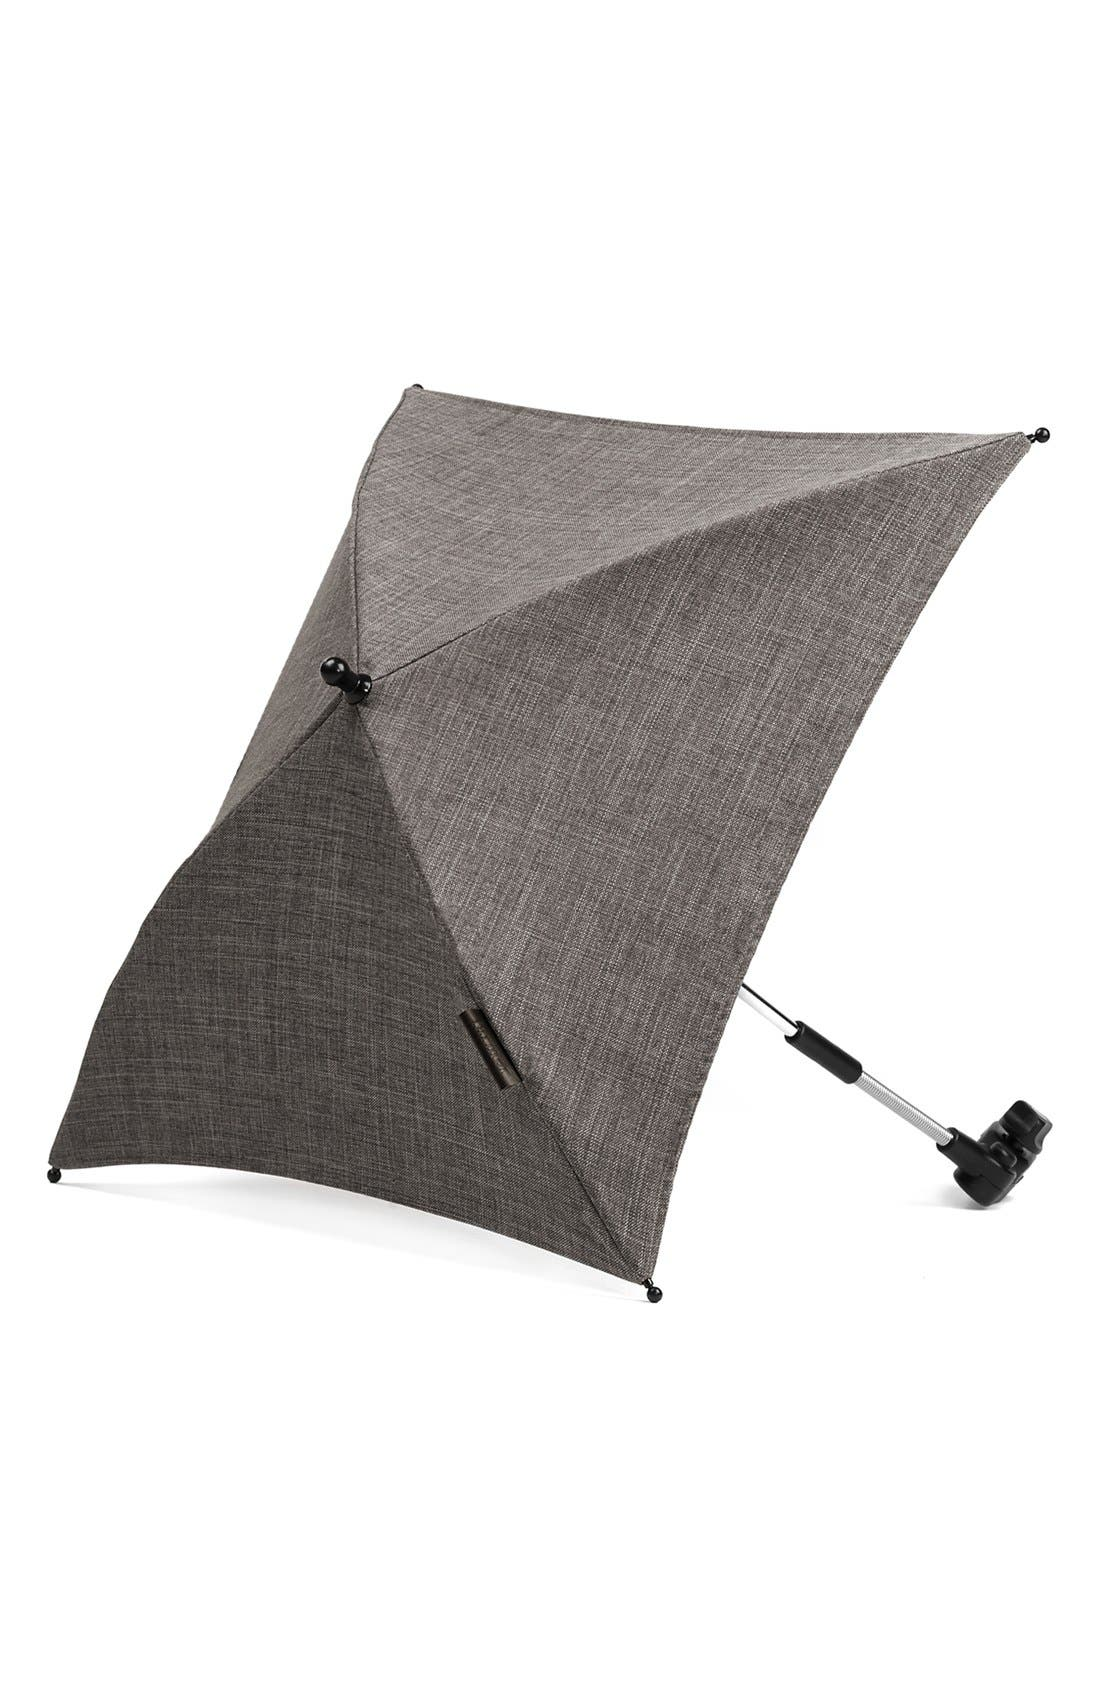 'Evo - Famer Earth' Stroller Umbrella,                             Main thumbnail 1, color,                             BROWN